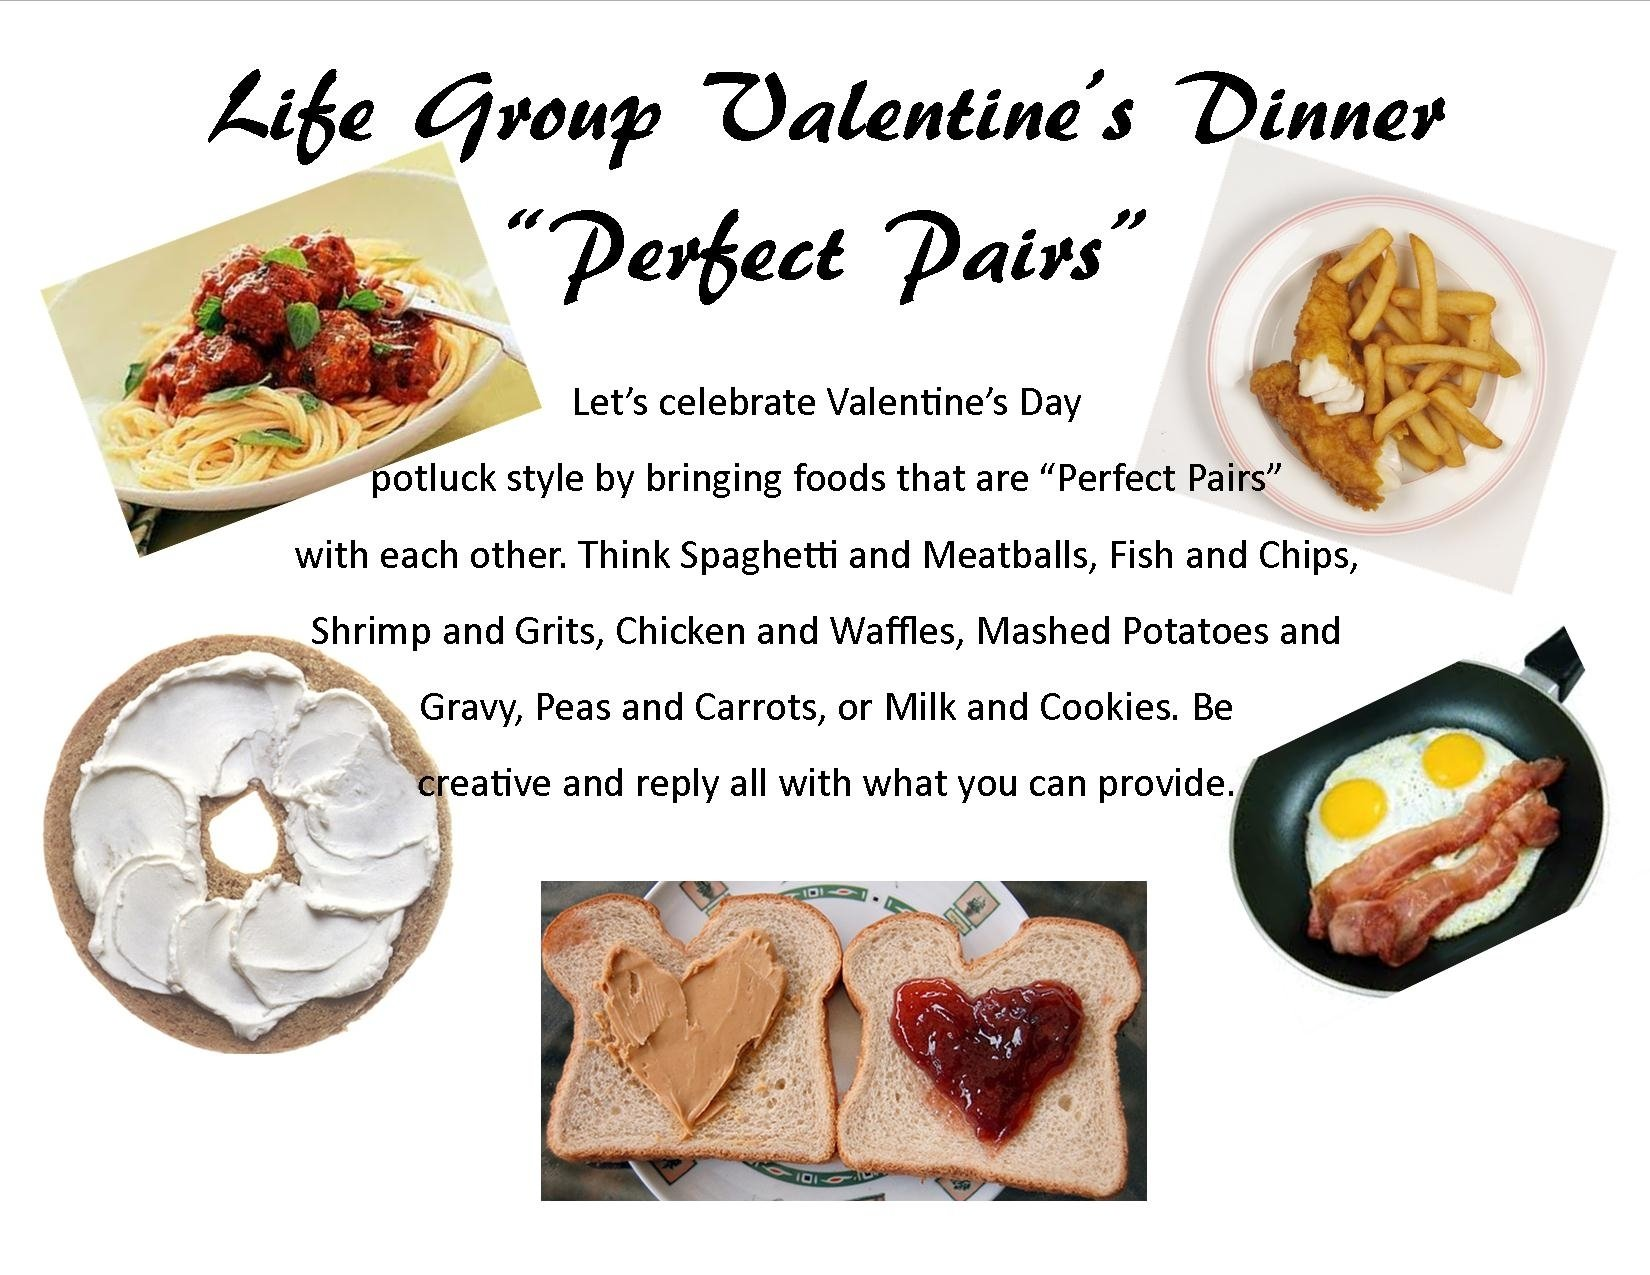 10 Stylish Food Day Ideas For Work perfect pairs potluck valentines day themed party clementine bean 2 2020